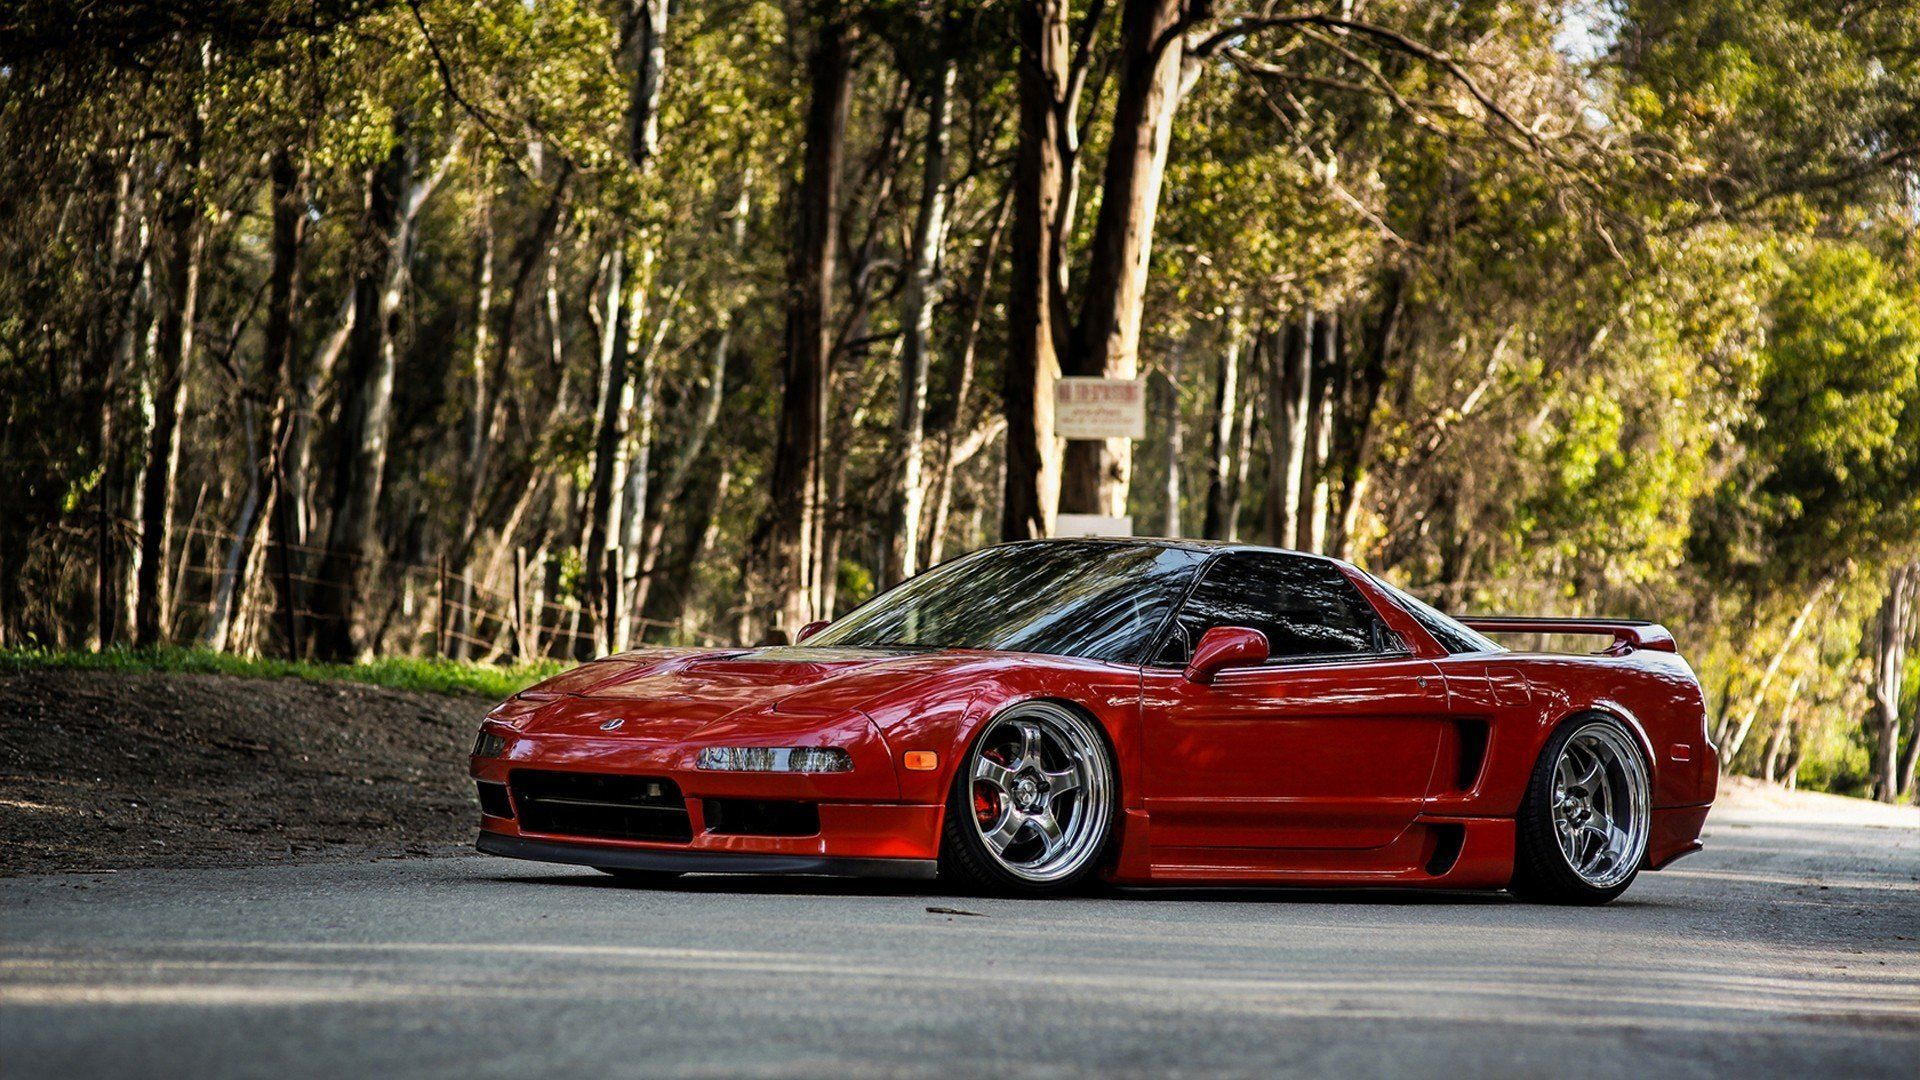 car wallpapers acura nsx jdm tuning red automobile desktop